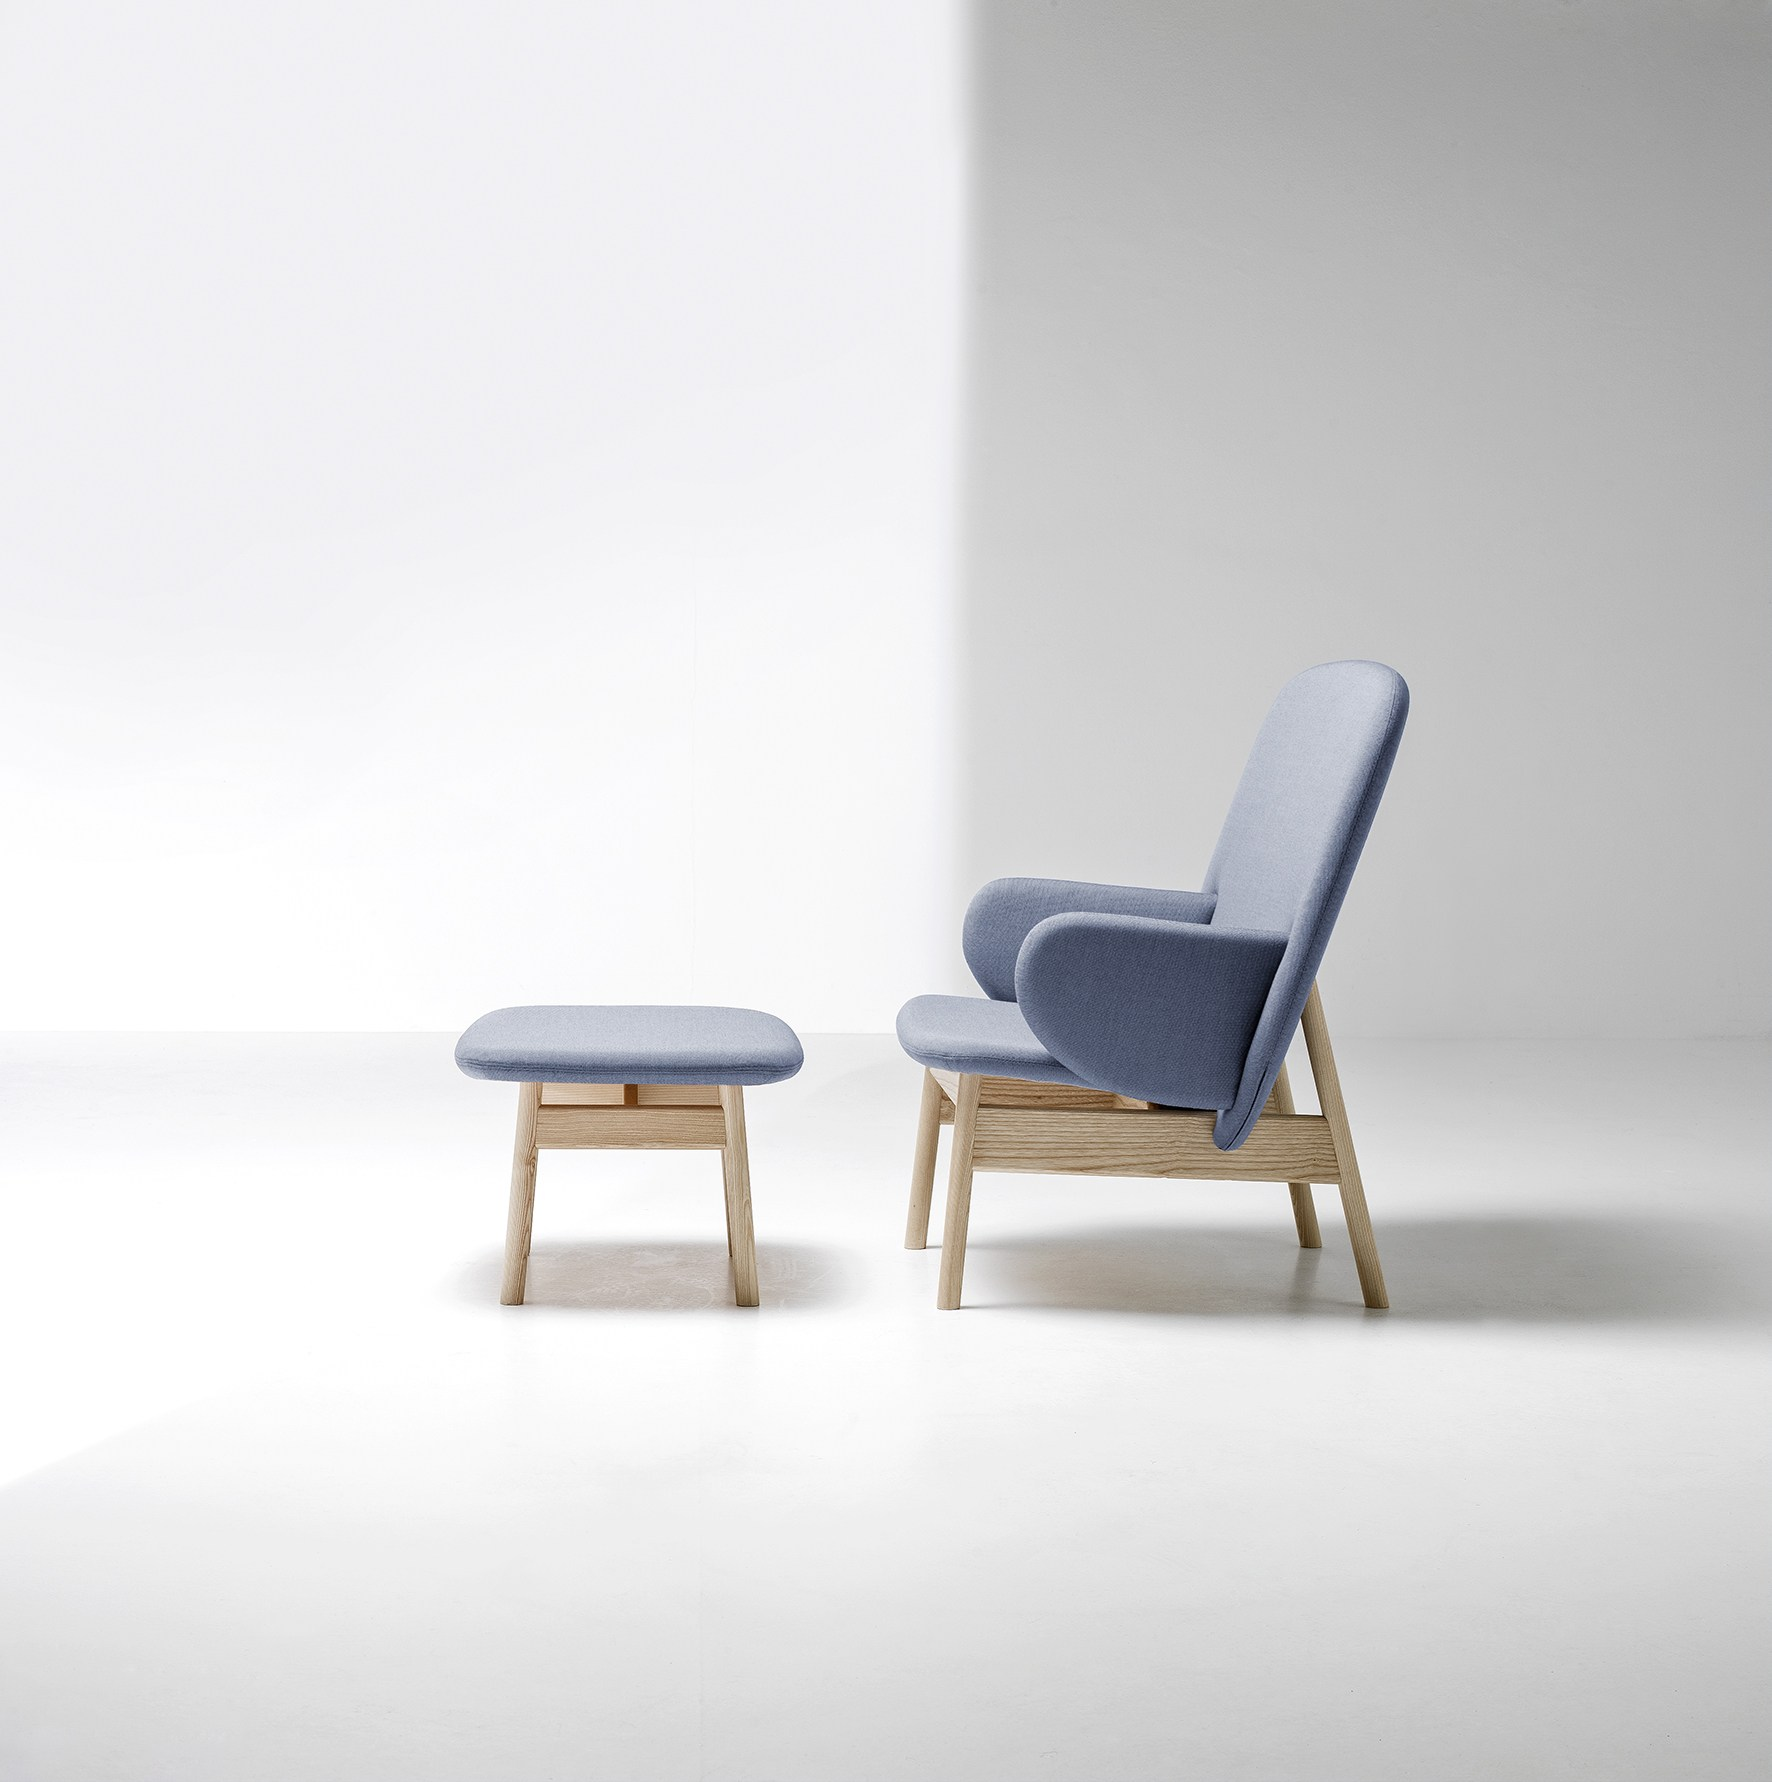 Ala Armchair & Footstool by Sebastian Herkner for La Cividina